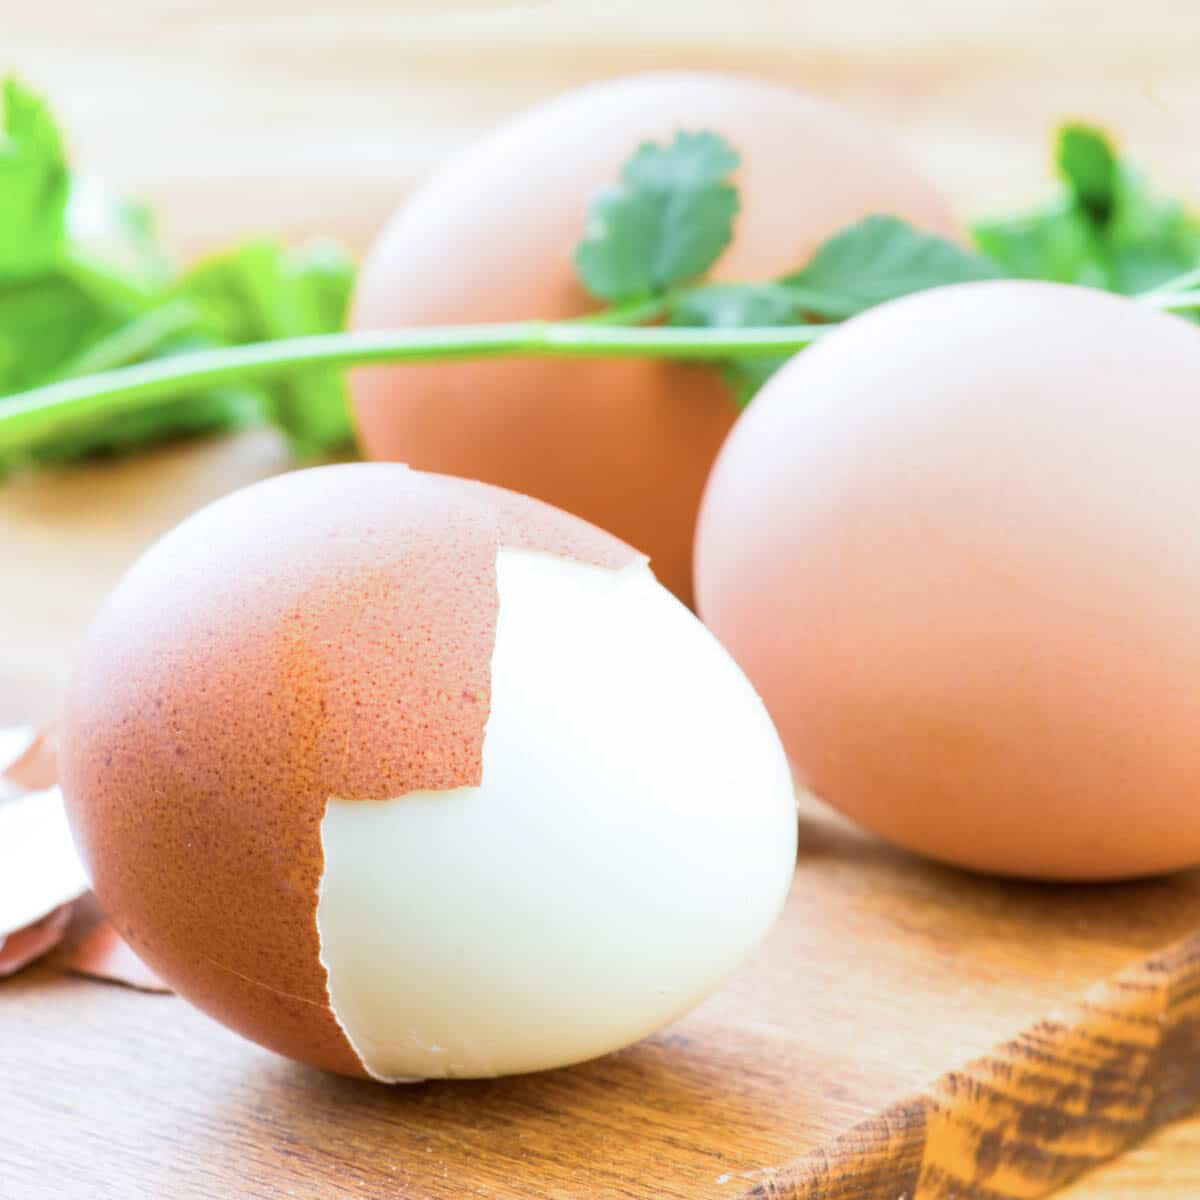 how to tell if an egg is boiled